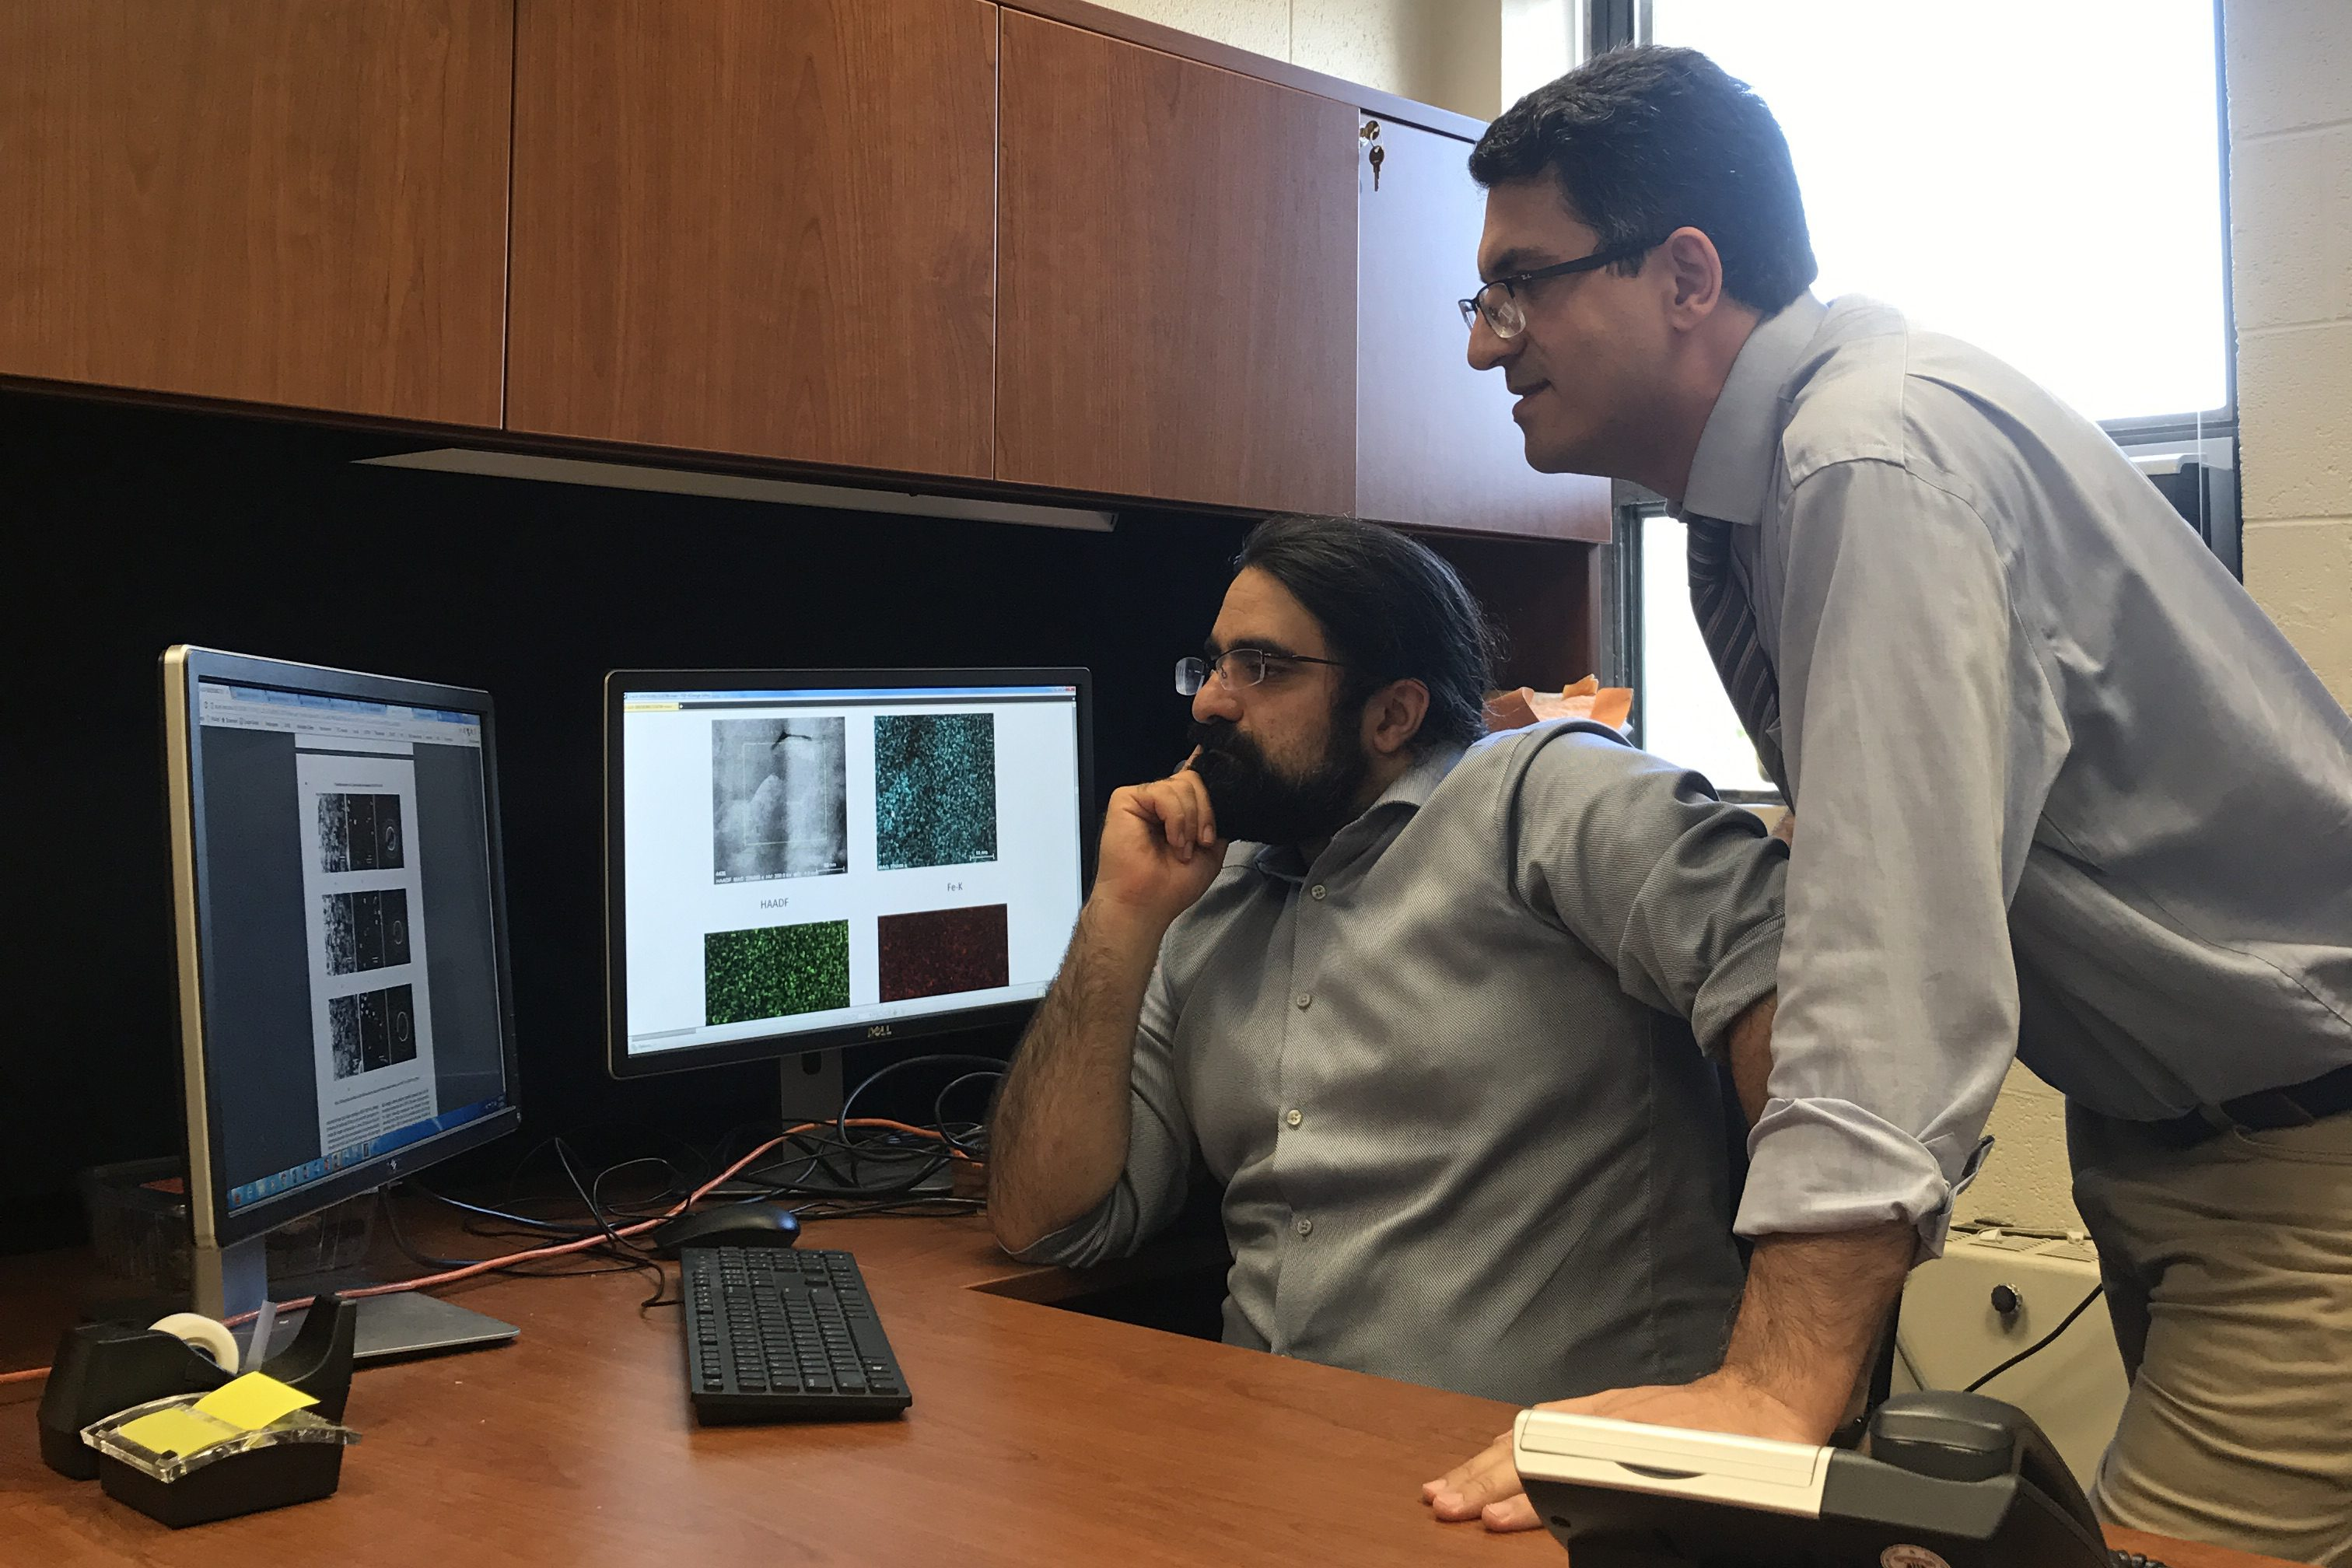 Postdoctoral researcher Peiman Shahbeigi (standing) and Sina Shahbazmohmadi, assistant professor in biomaterials engineering, discuss grain microstructures characterized by an advanced electron microscope.